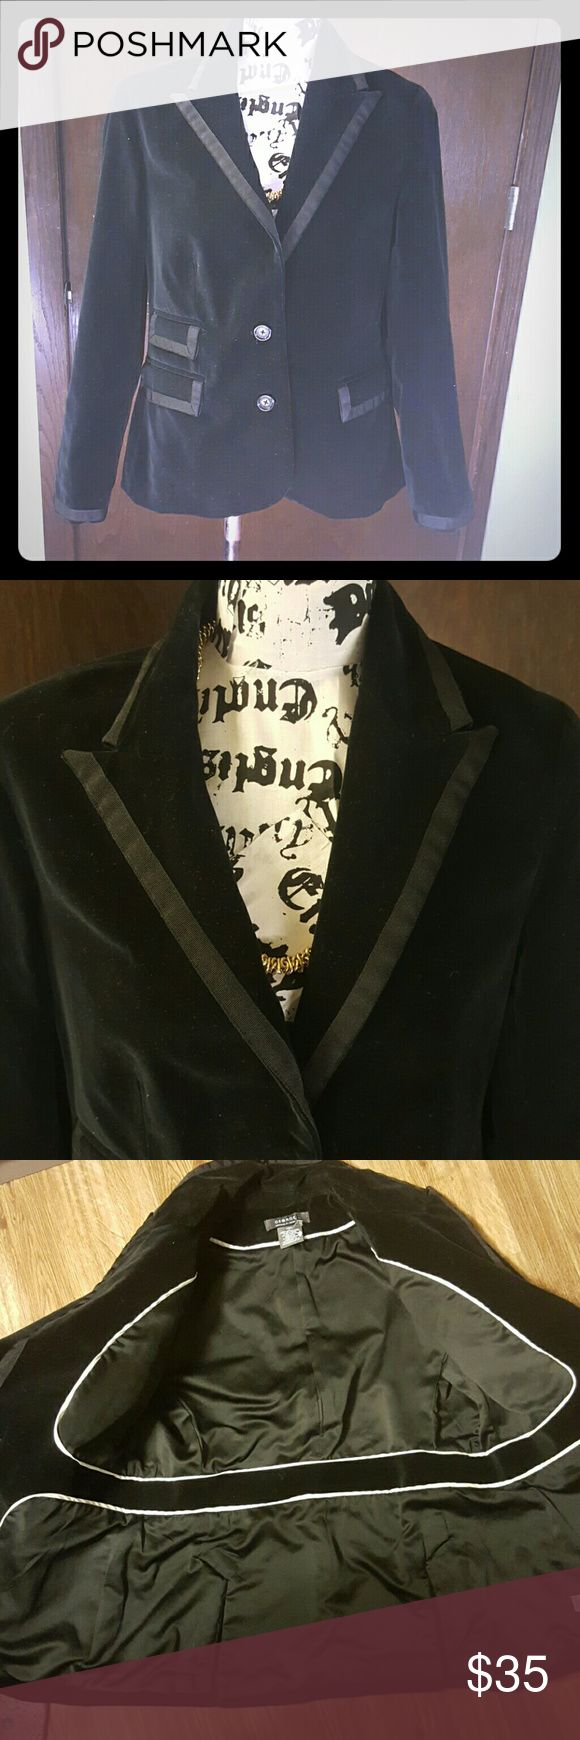 Beautiful Black Blazer Feels like satin! Extremely well designed and crafted blazer  Designer blazer with tuxedo style collar  Size 12  New No wear George Me by Mark Eisen Jackets & Coats Blazers